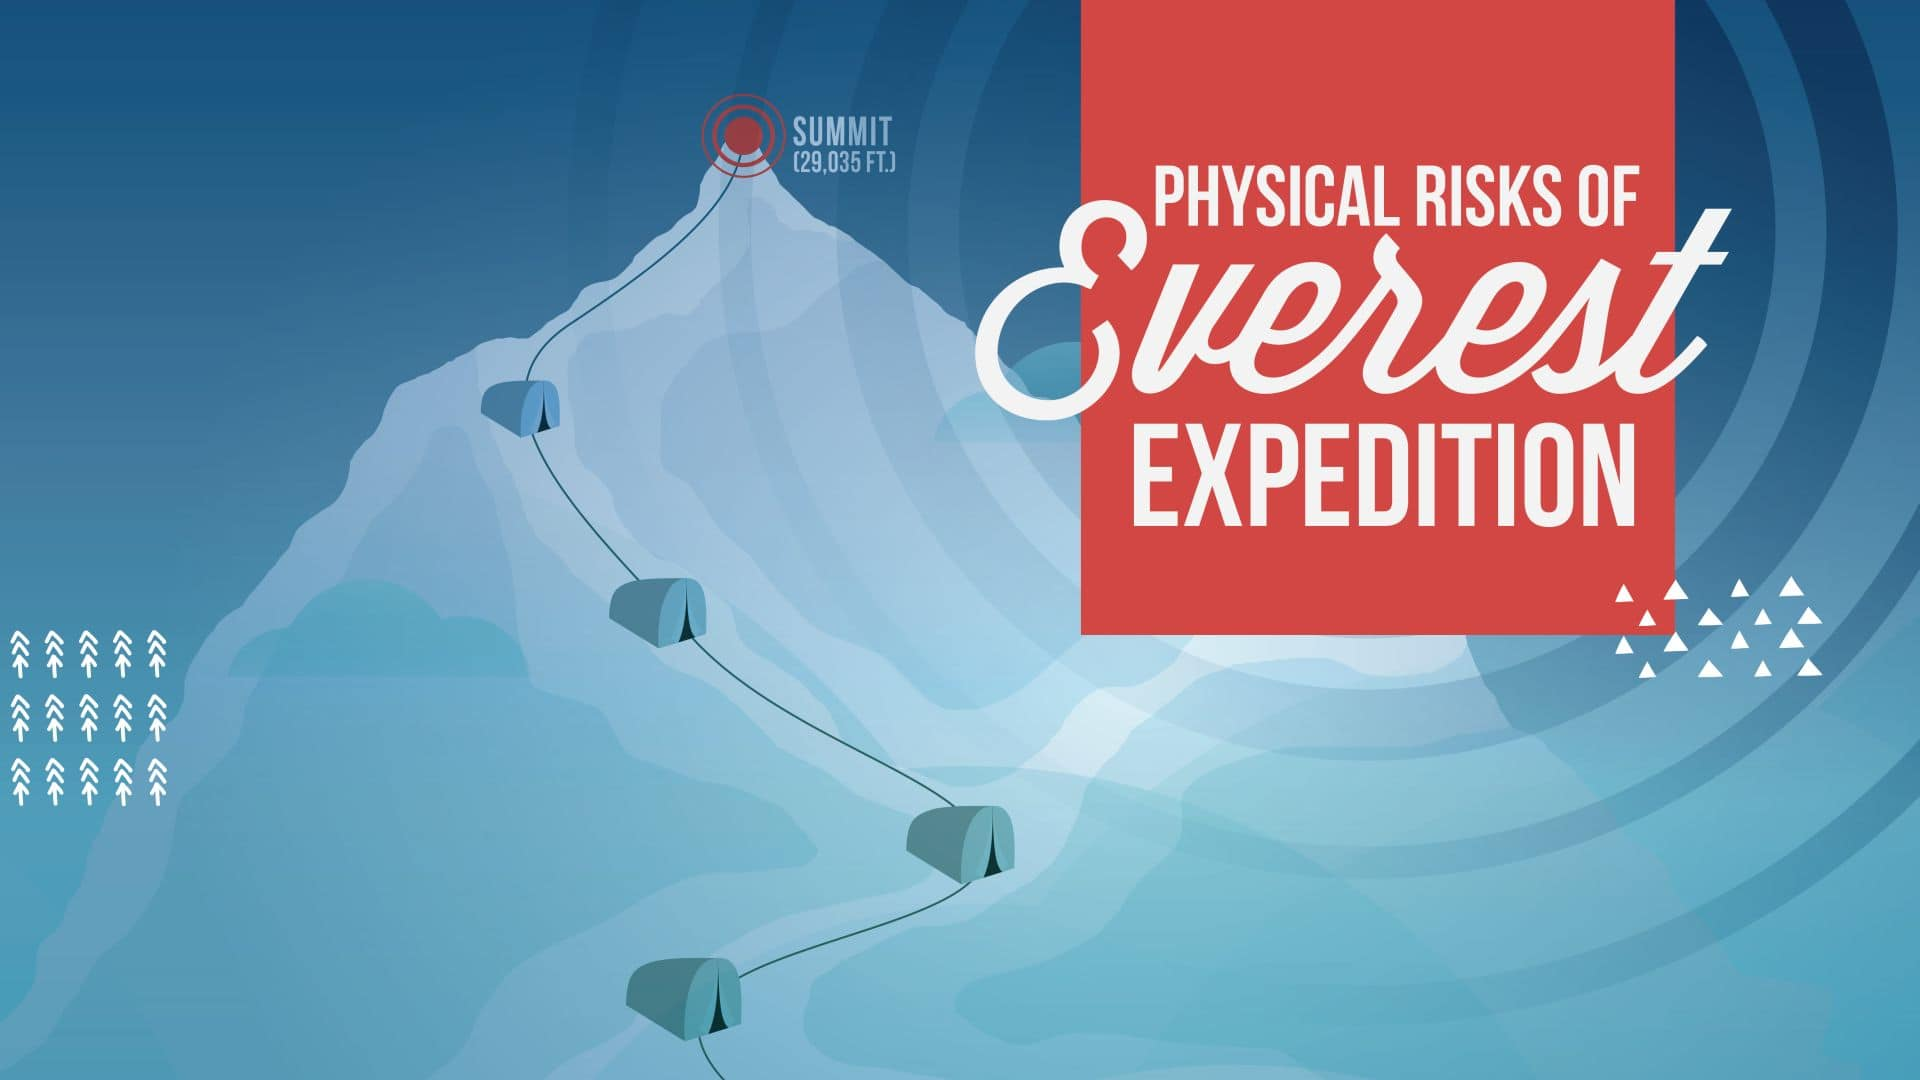 Physical risks of Everest expedition